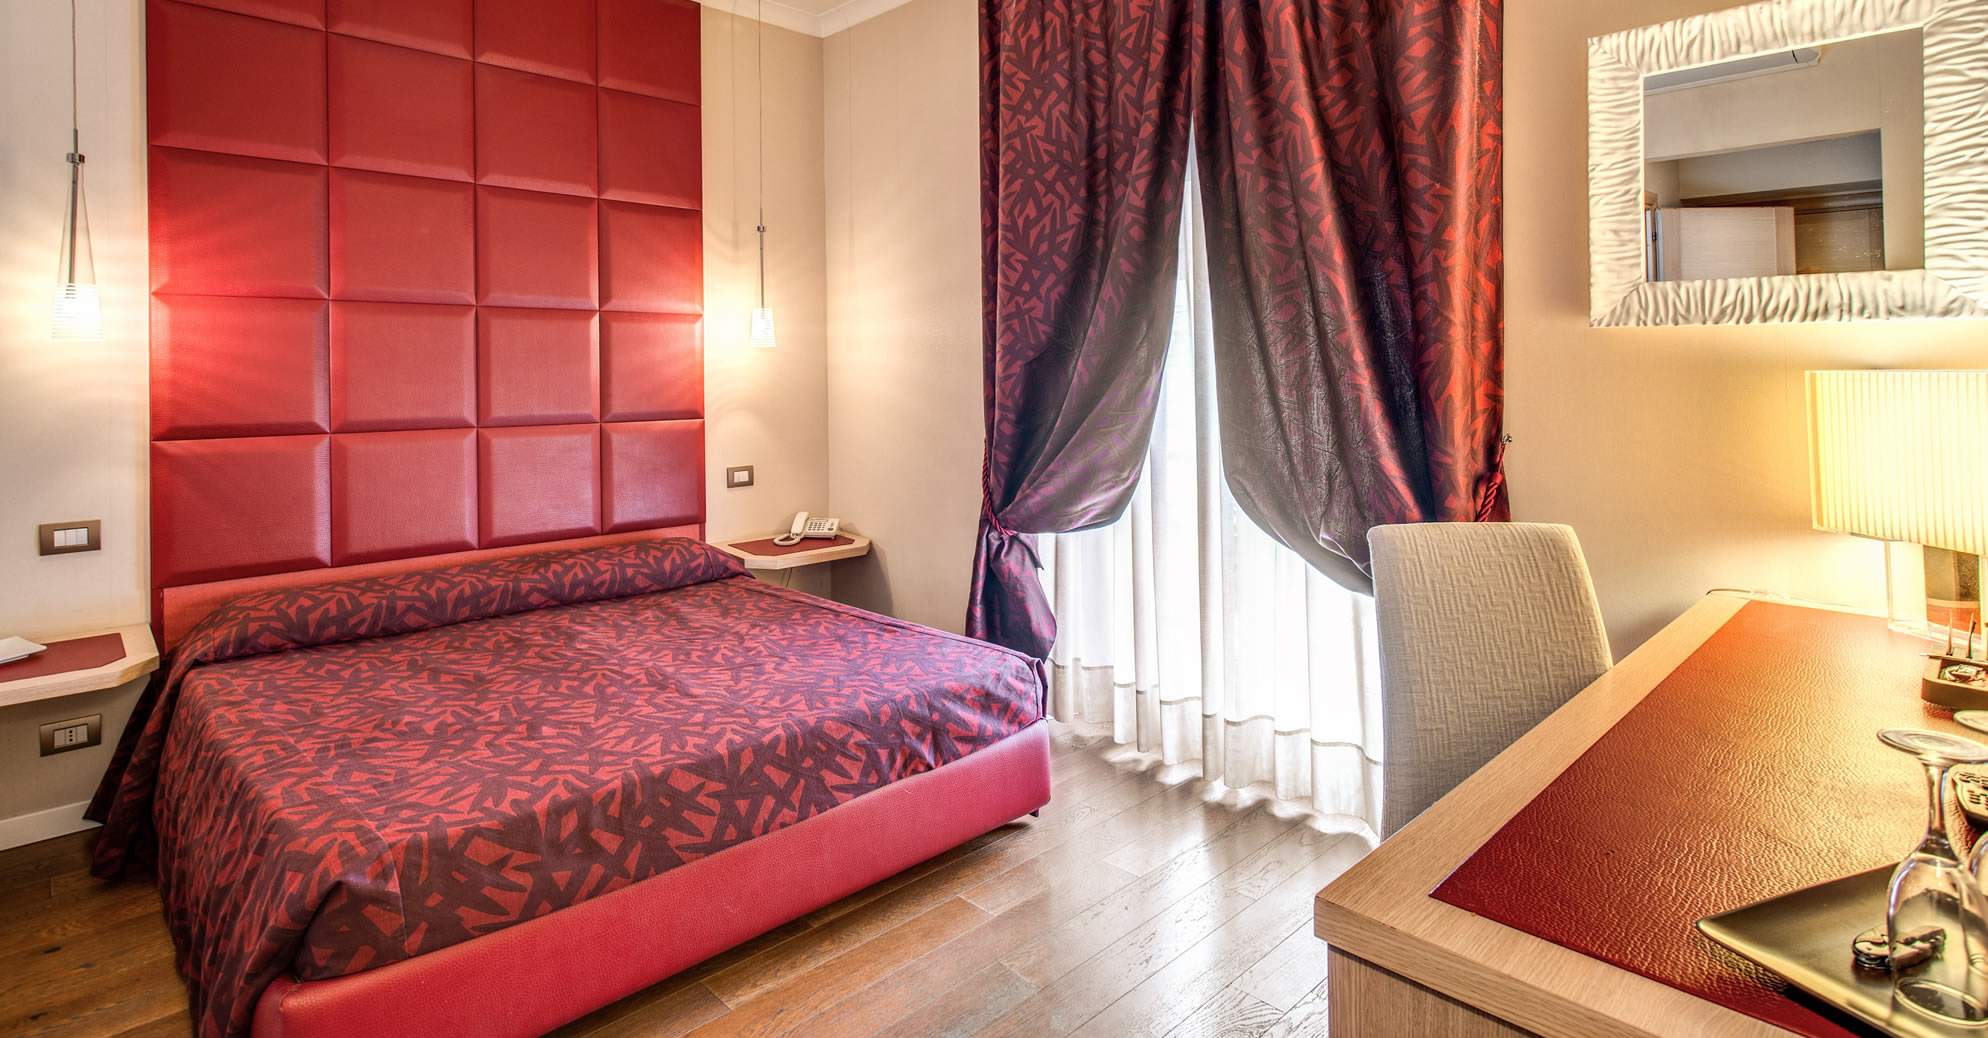 Boutique guesthouse roma official site four star city for Boutique design hotels